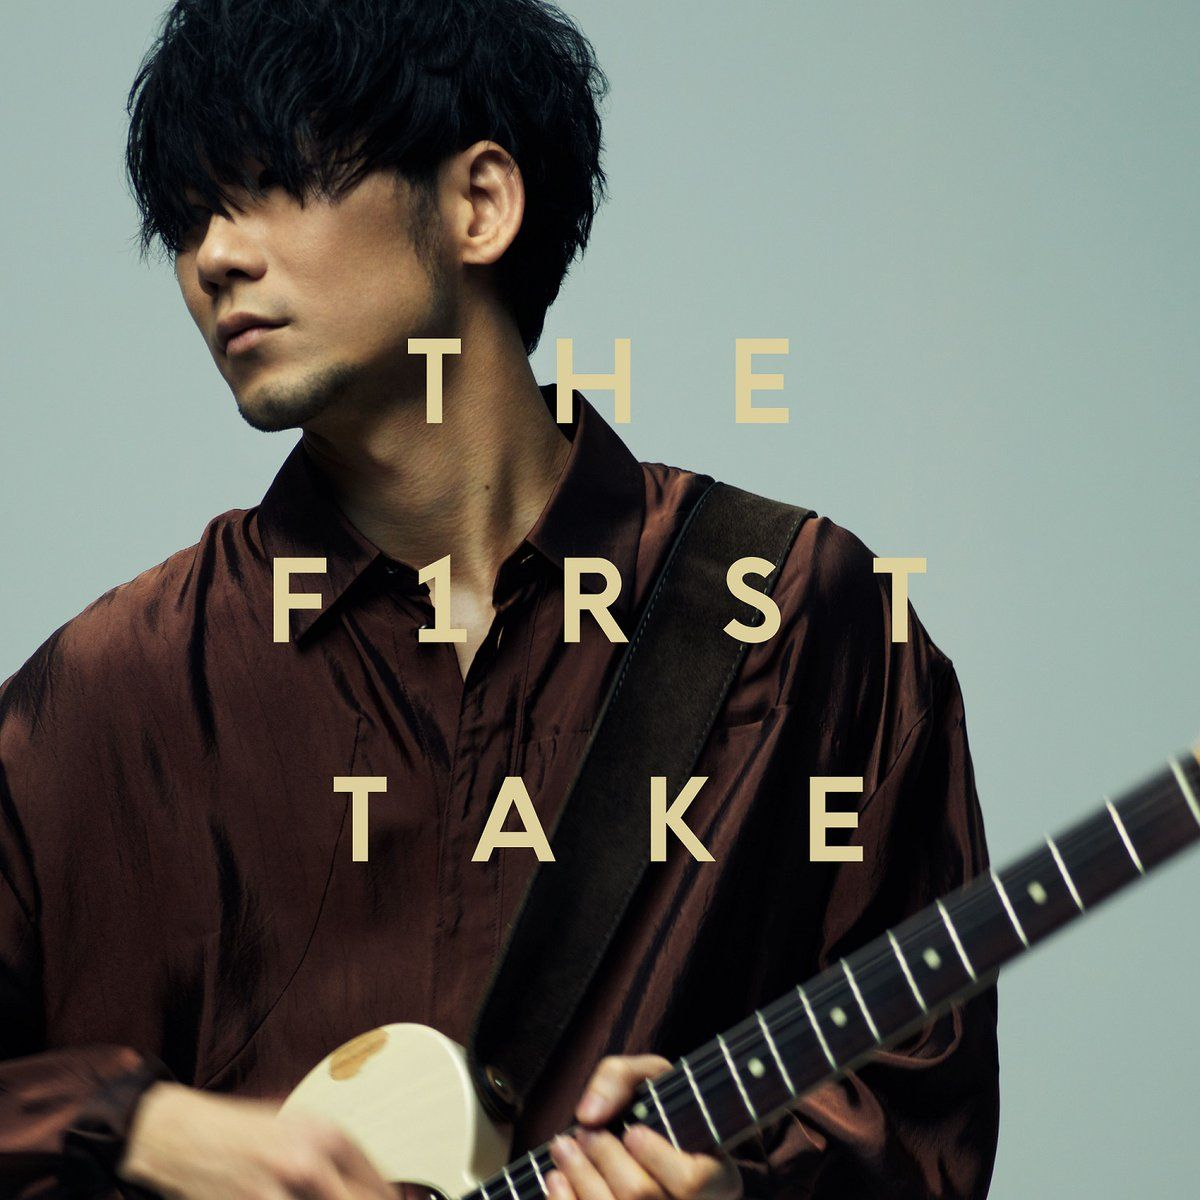 TK from 凛として時雨 unravel From THE FIRST TAKE [2020.07.24